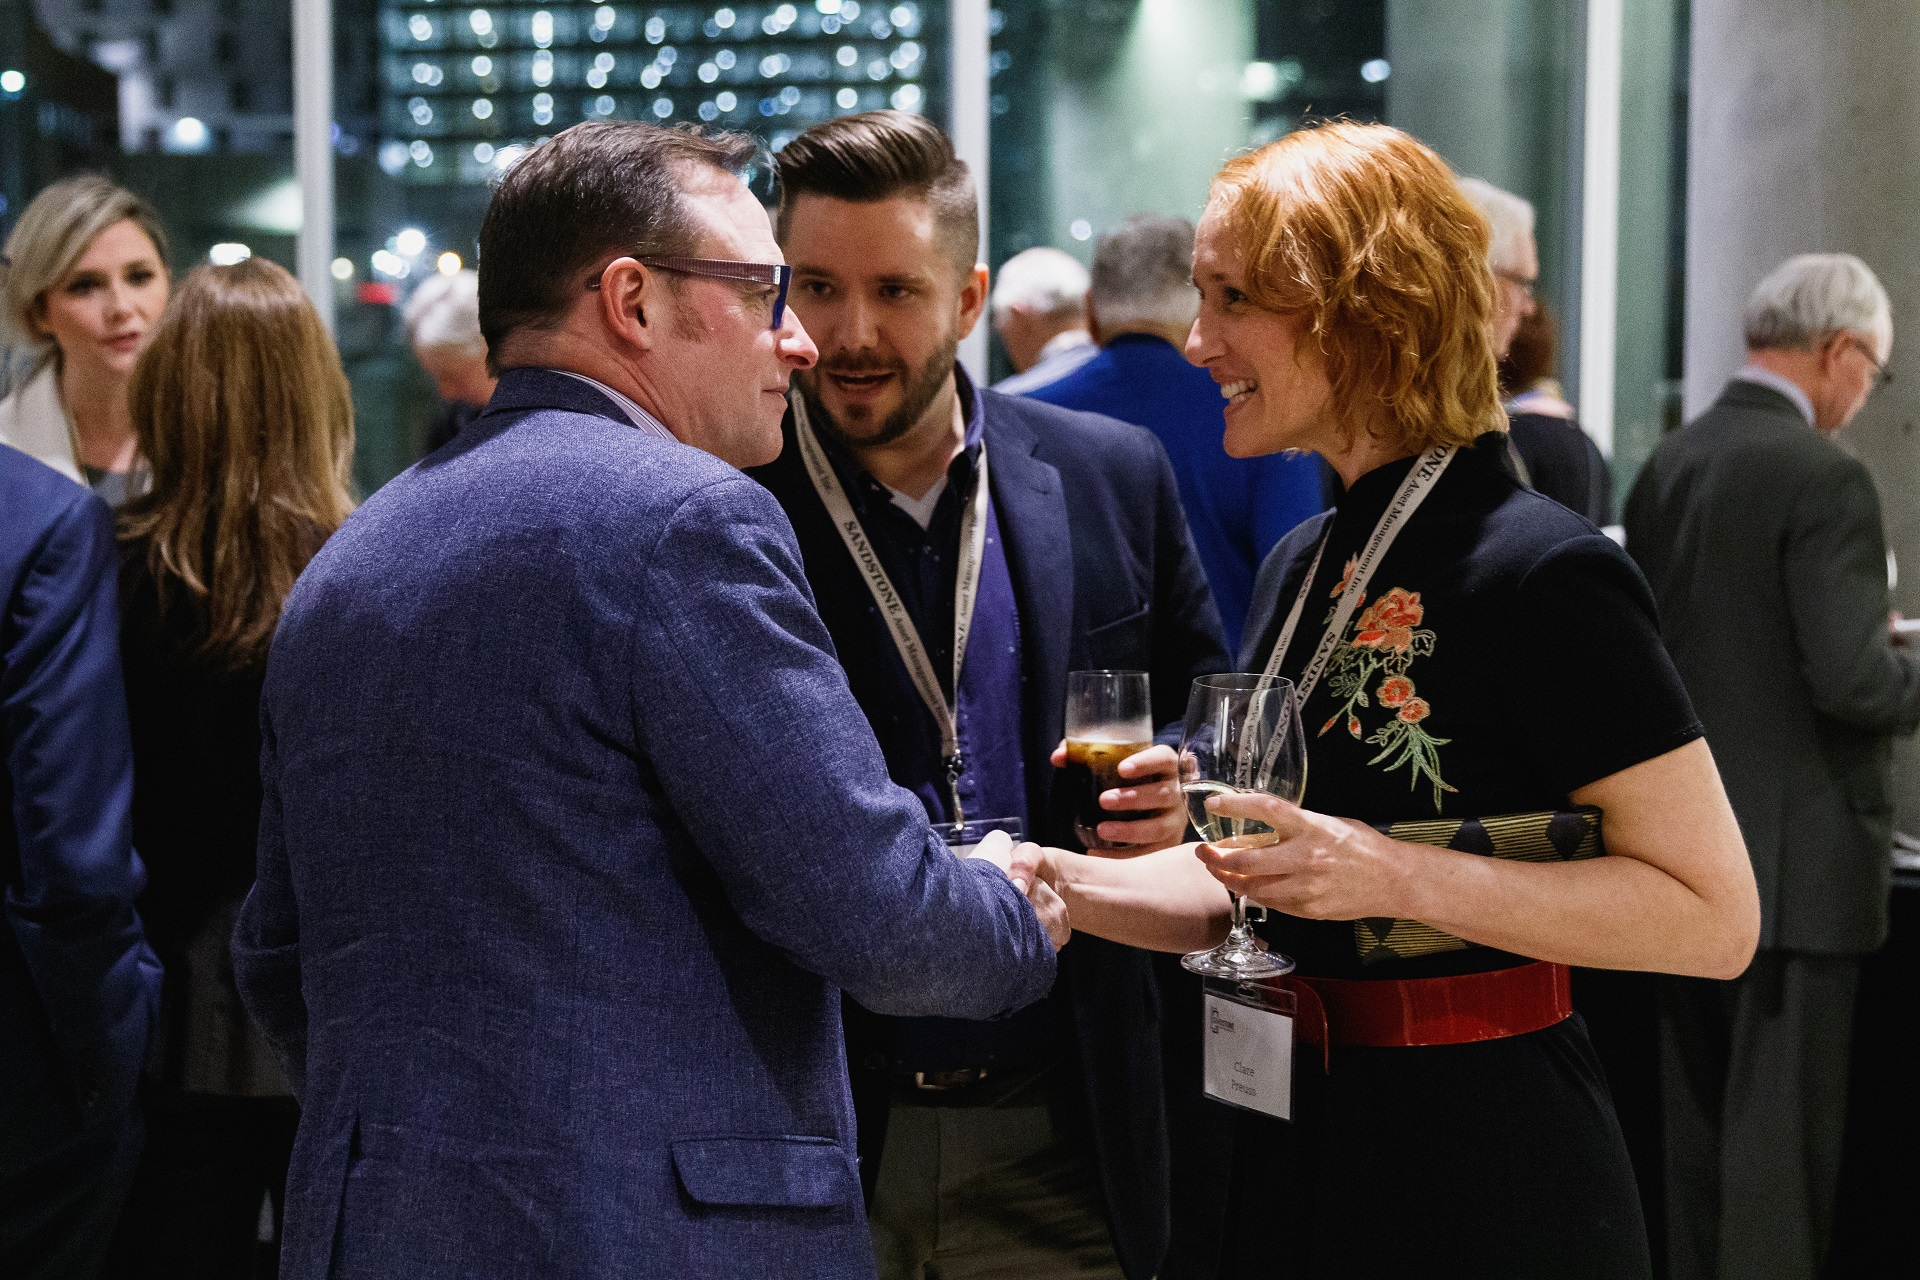 Guests making connections at OUTLOOK 2019